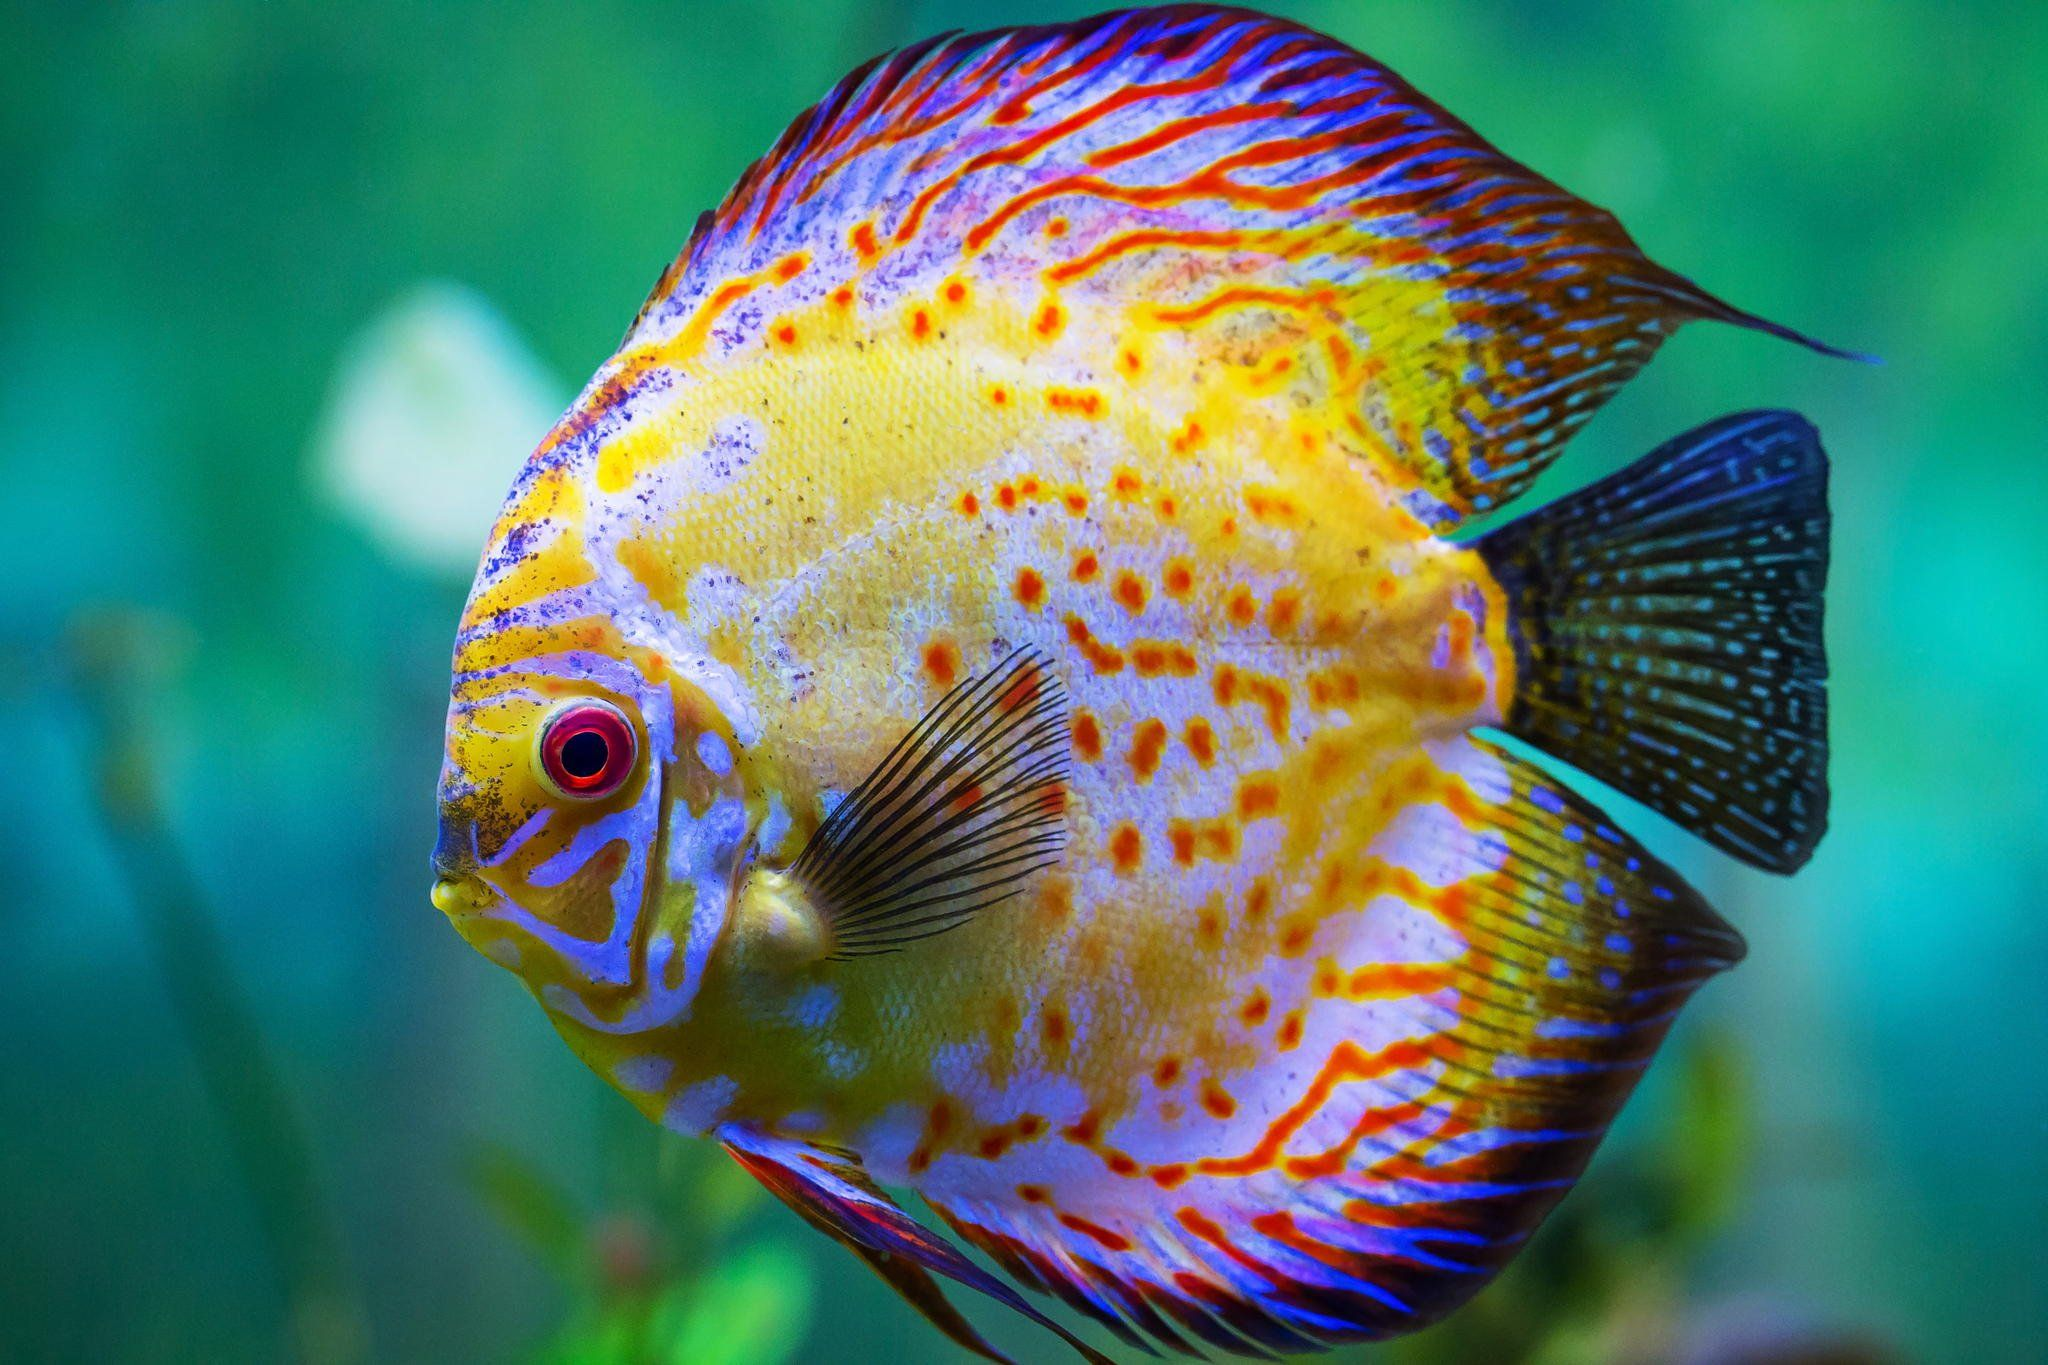 Discus tropical fish hd wallpaper 424521 goldfish koi for Purchase koi fish